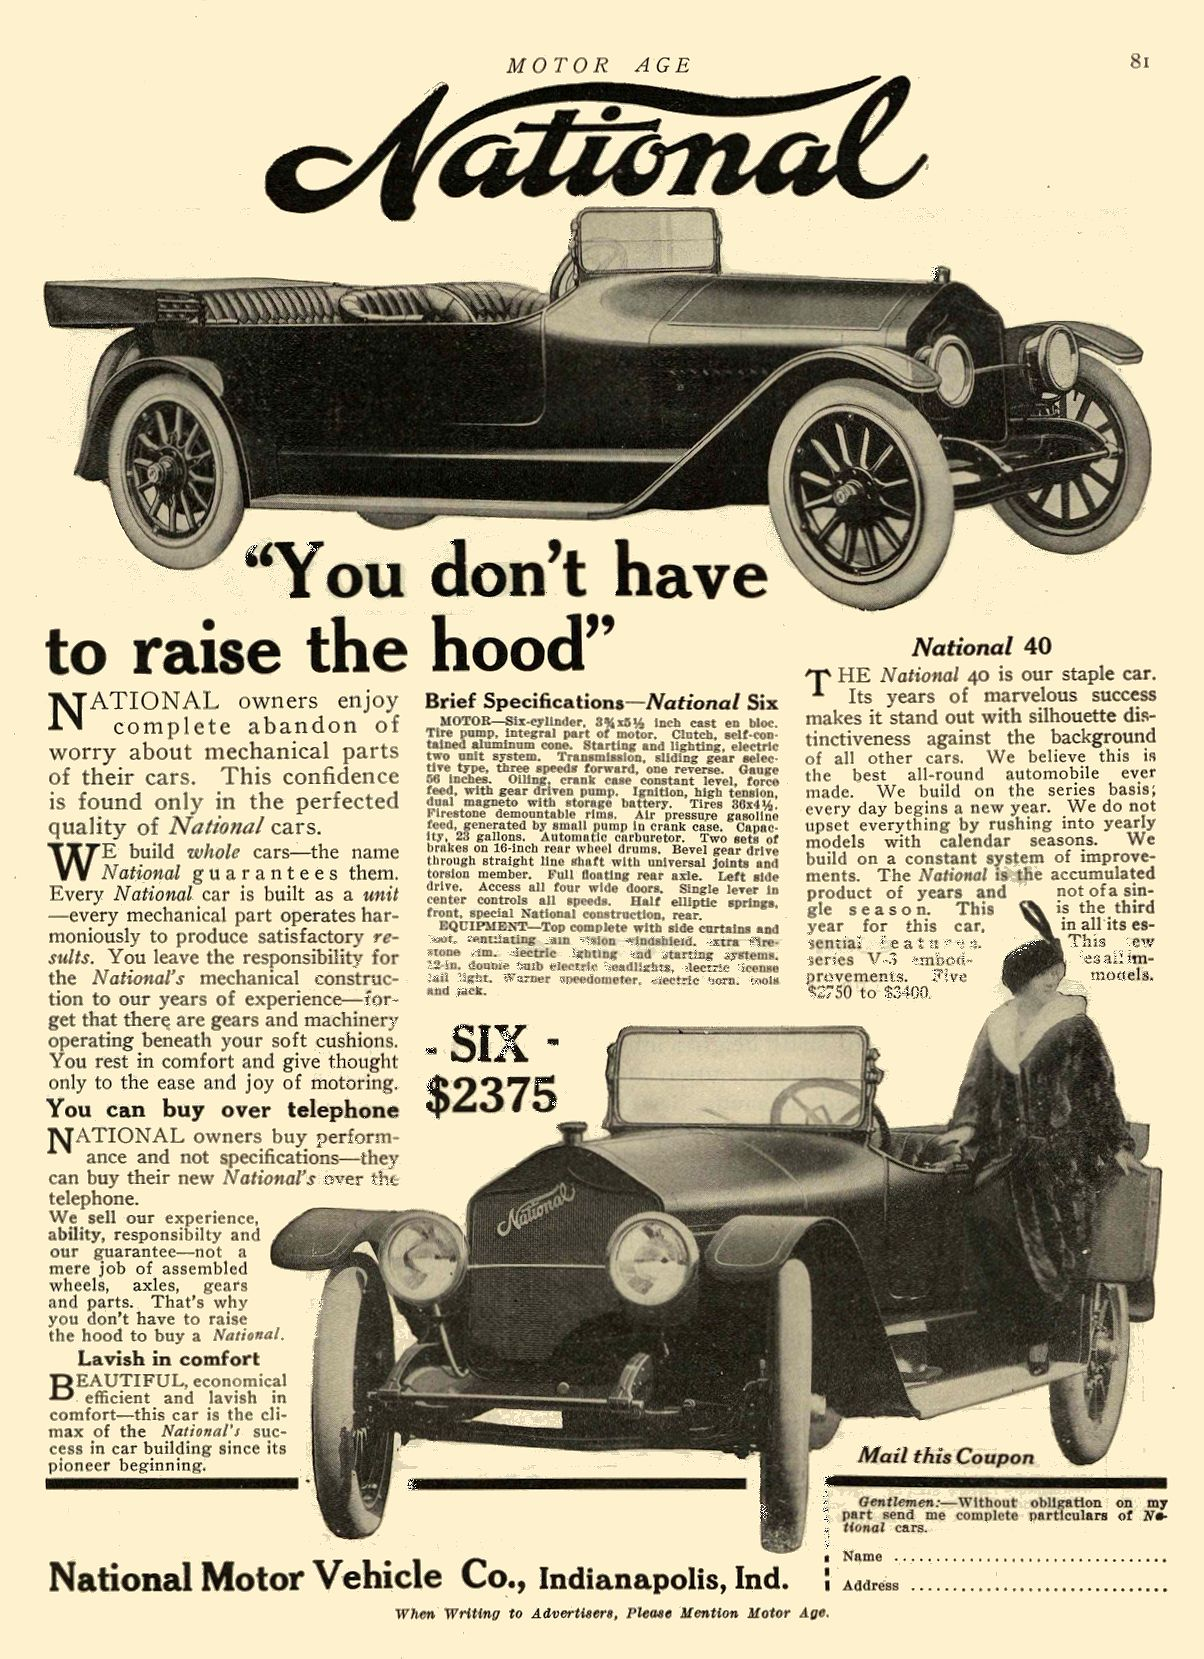 """1914 1 8 NATIONAL """"You don't have to raise the hood"""" National Motor Vehicle Co. Indianapolis, IND MOTOR AGE January 8, 1914 8.5″x11.75″ page 81"""